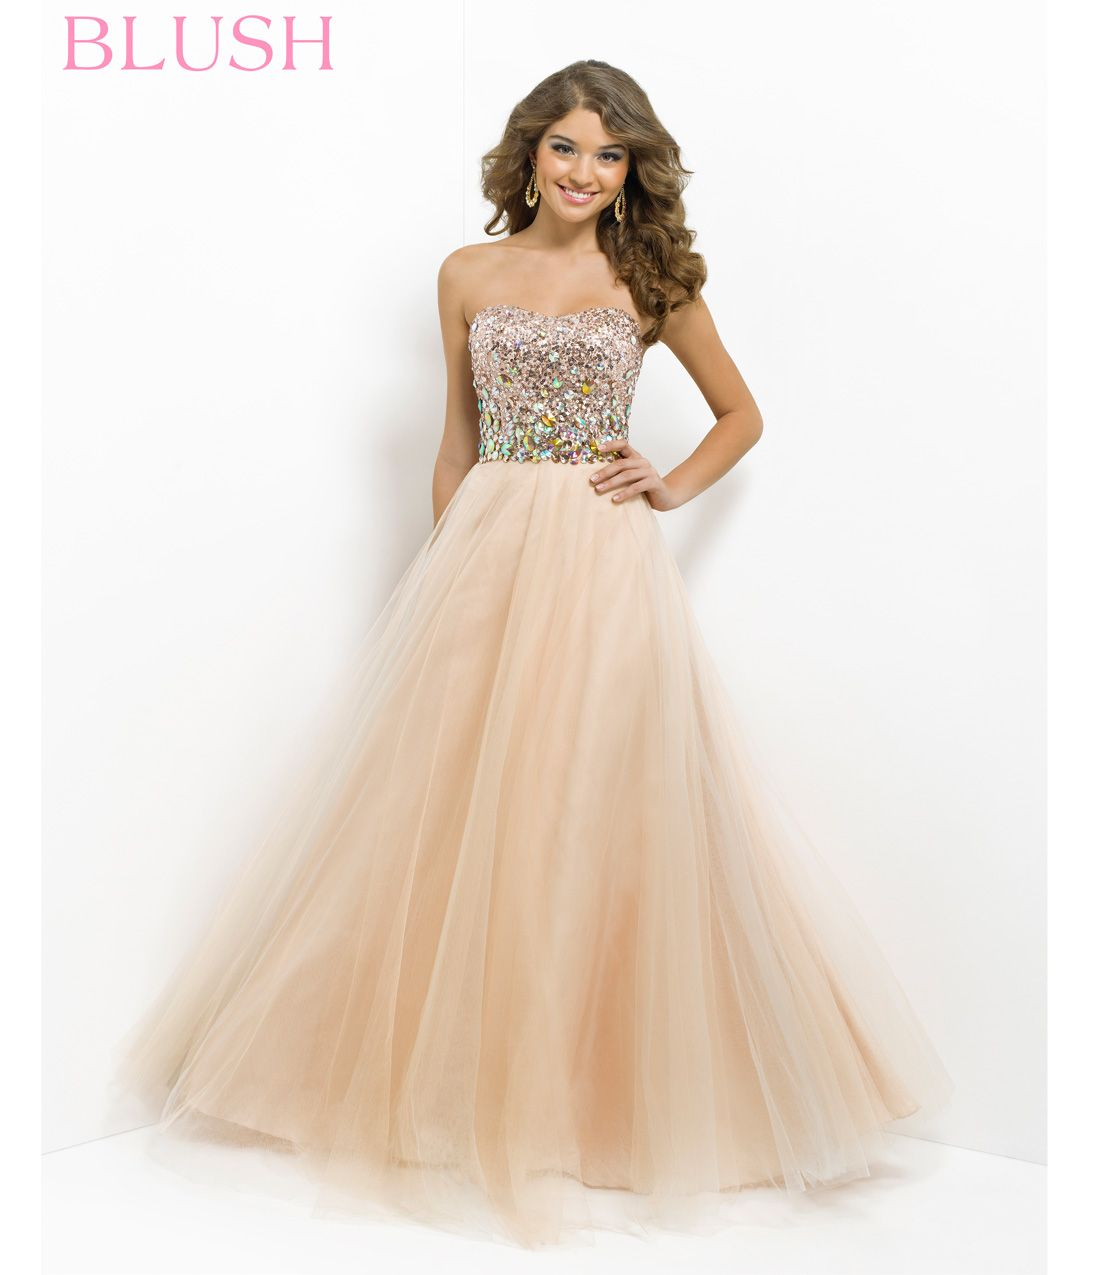 Pink by Blush 2014 Prom Dresses - Champagne Strapless Sequin Prom ...